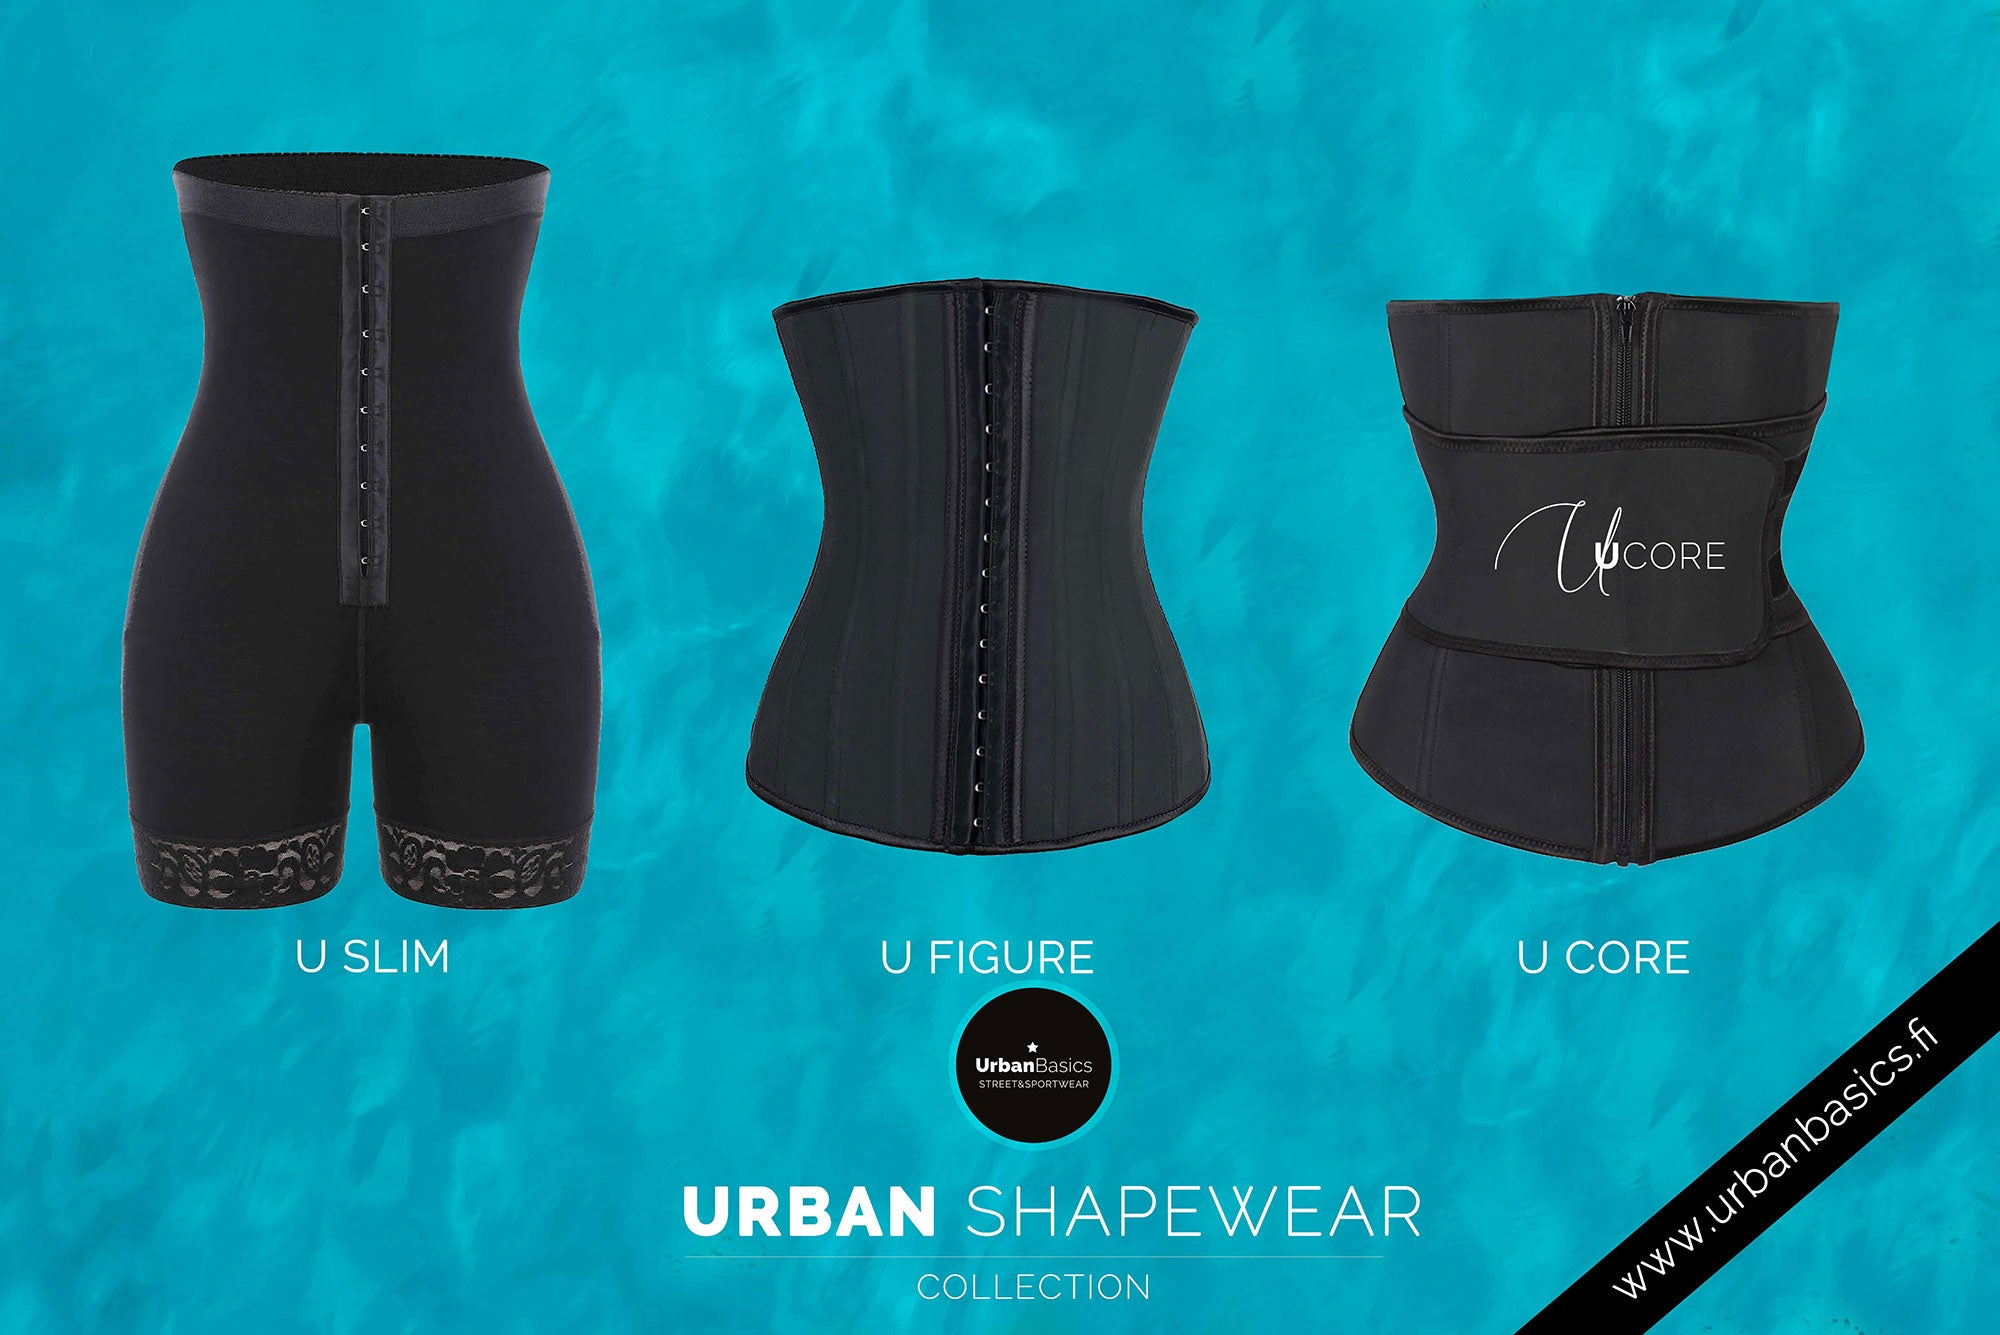 Urban Shapewear collection